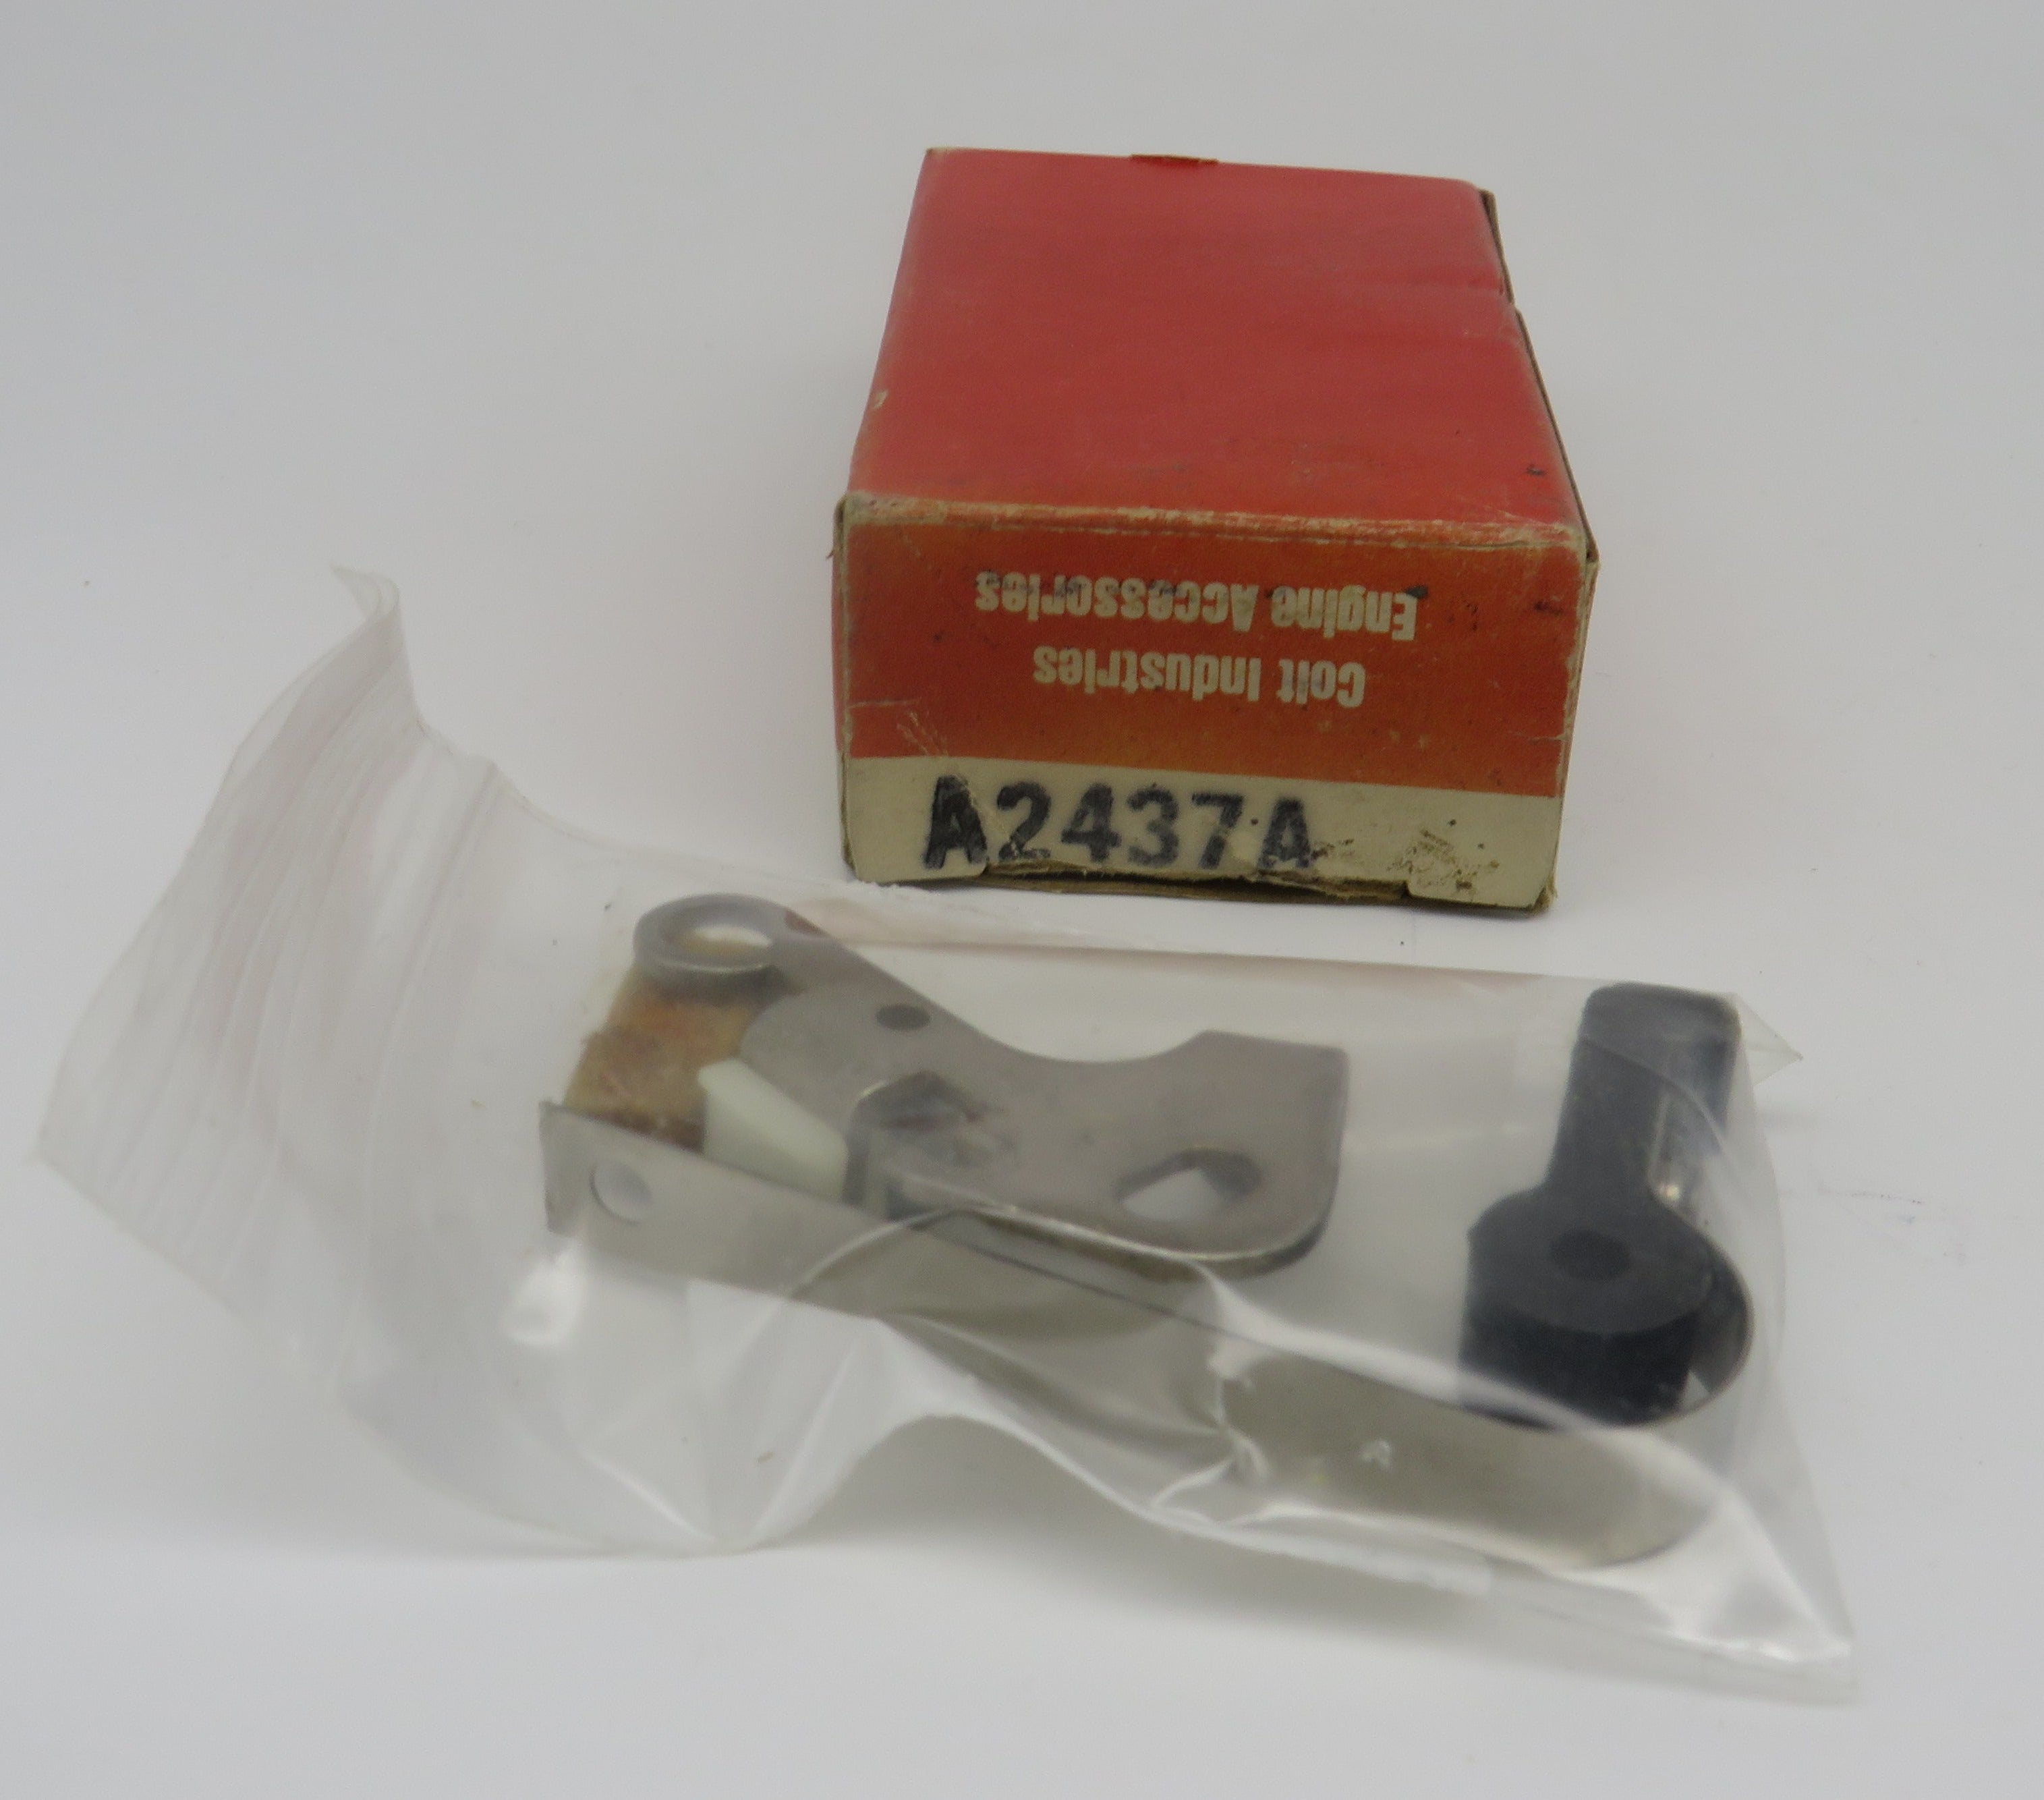 10031005 FMBA2437A Kohler Ignition Points 266240, Fair Banks, WED491507, A2437A